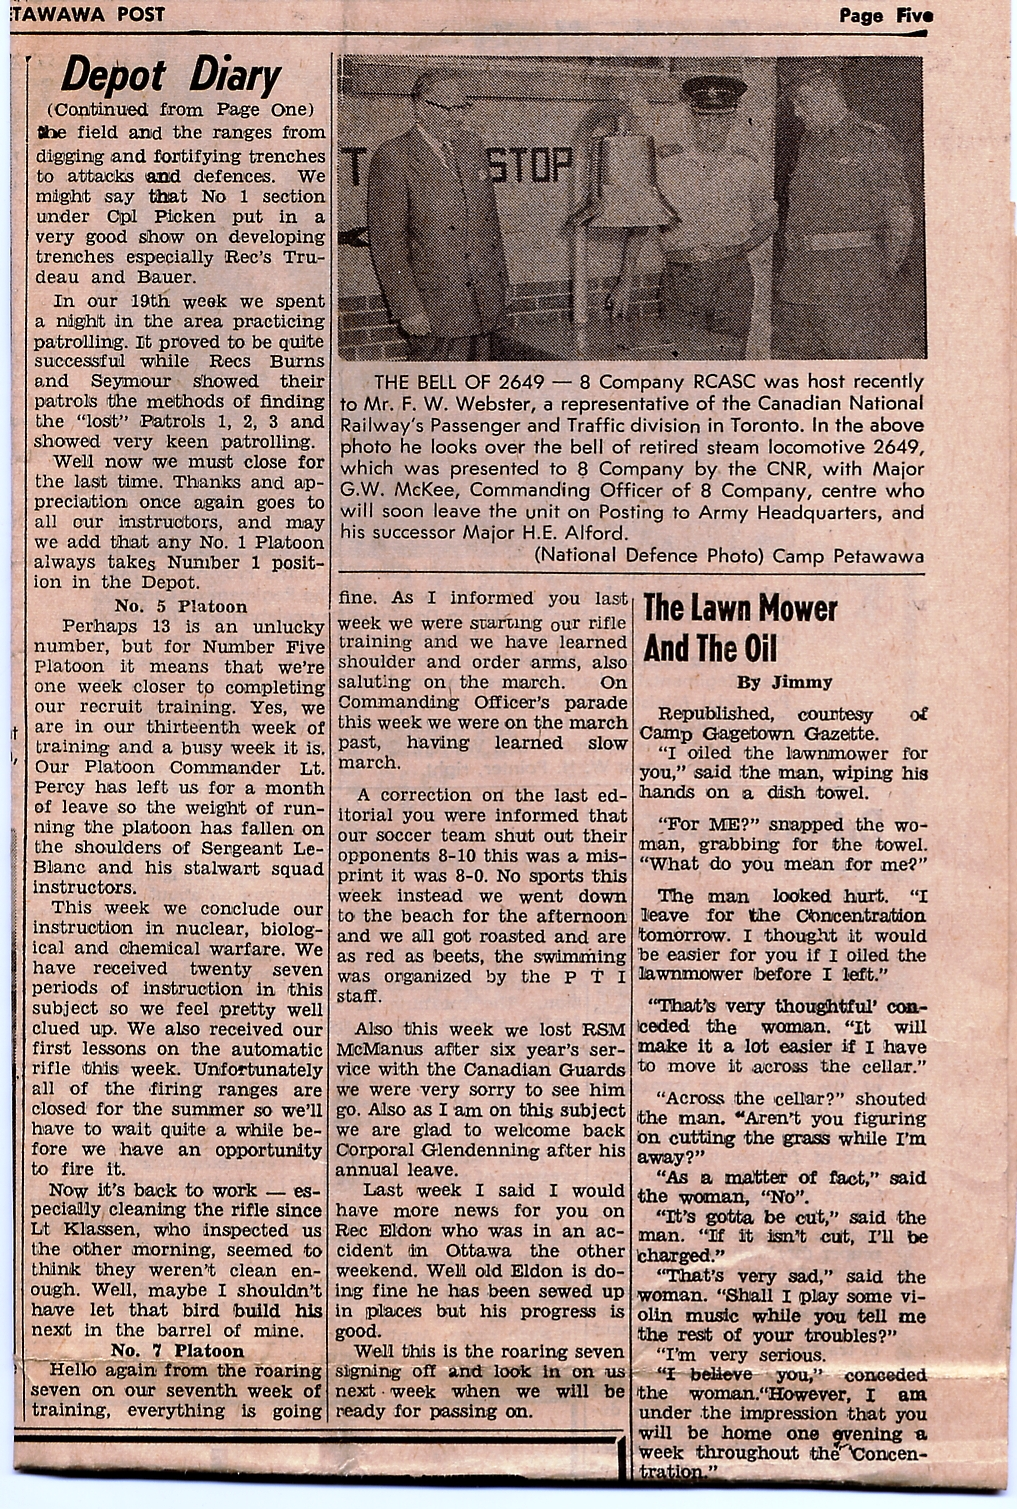 30_RSM McManus-Camp Petawawa Post-Wed 12 Jul 1961 - Pg 5b